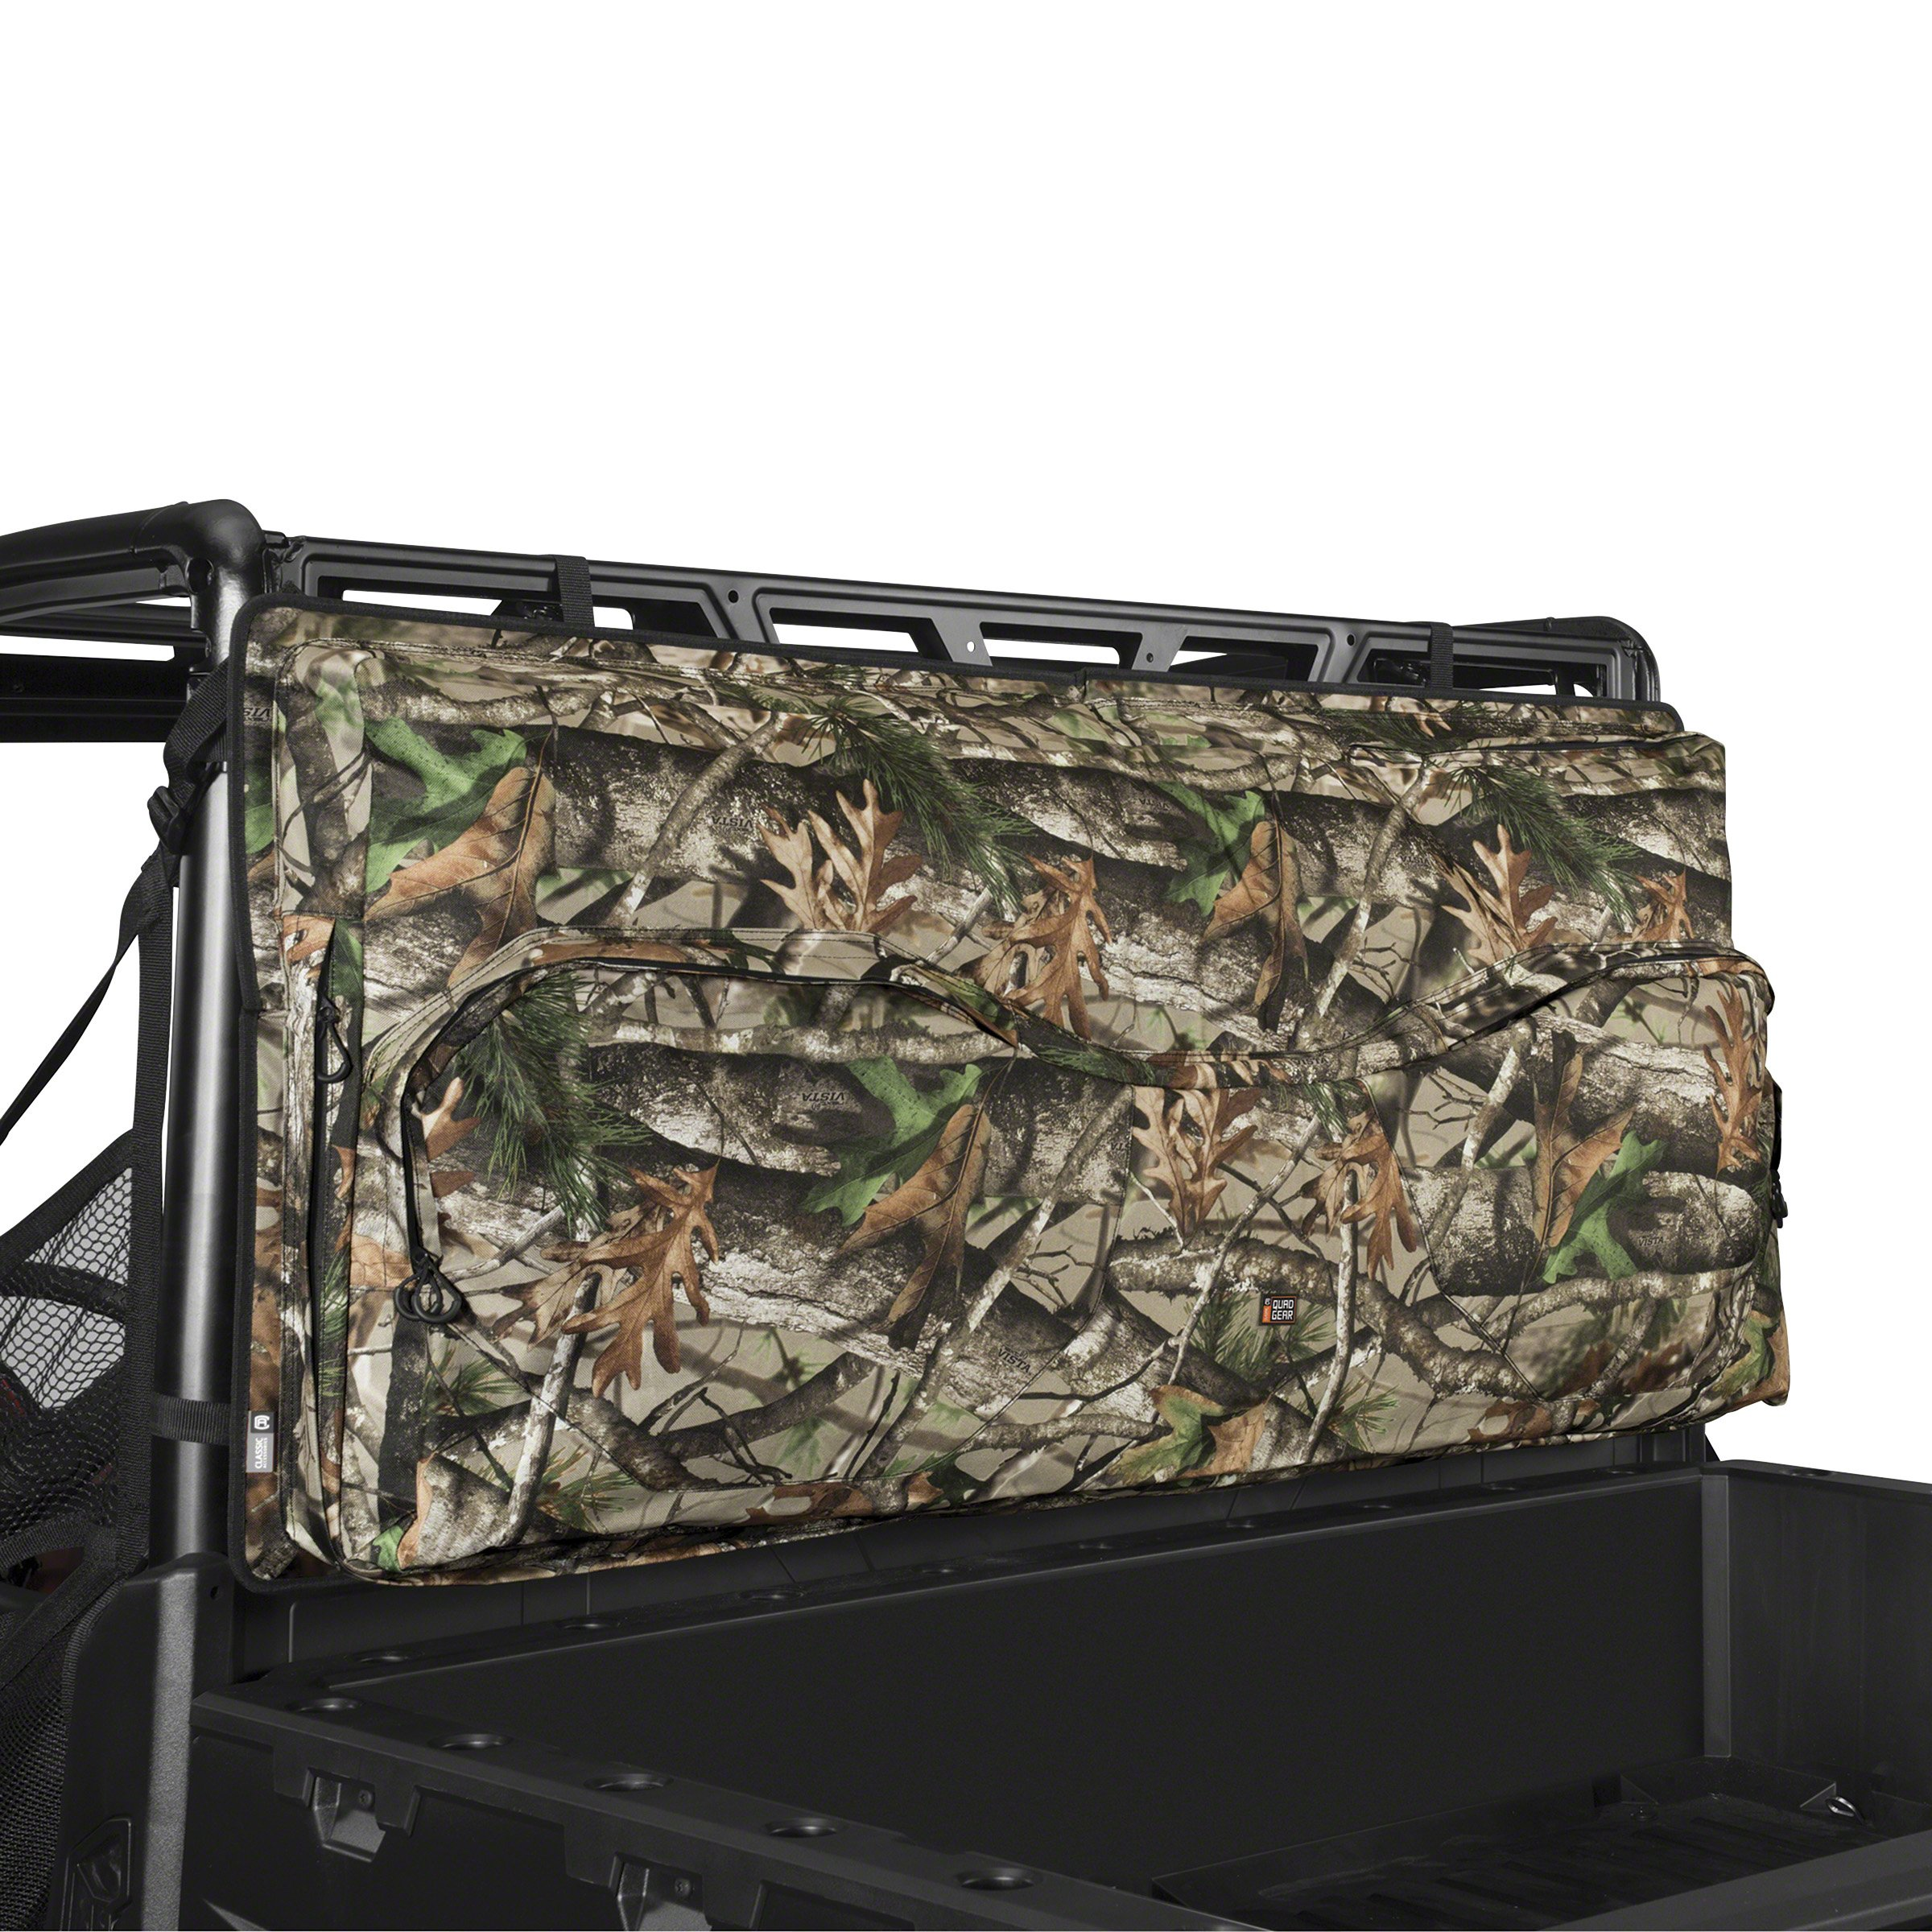 Classic Accessories 18-126-016001-00 Next Vista G1 Camo QuadGear UTV Deluxe Double Gun Carrier (For Most UTV Roll Cages) by Classic Accessories